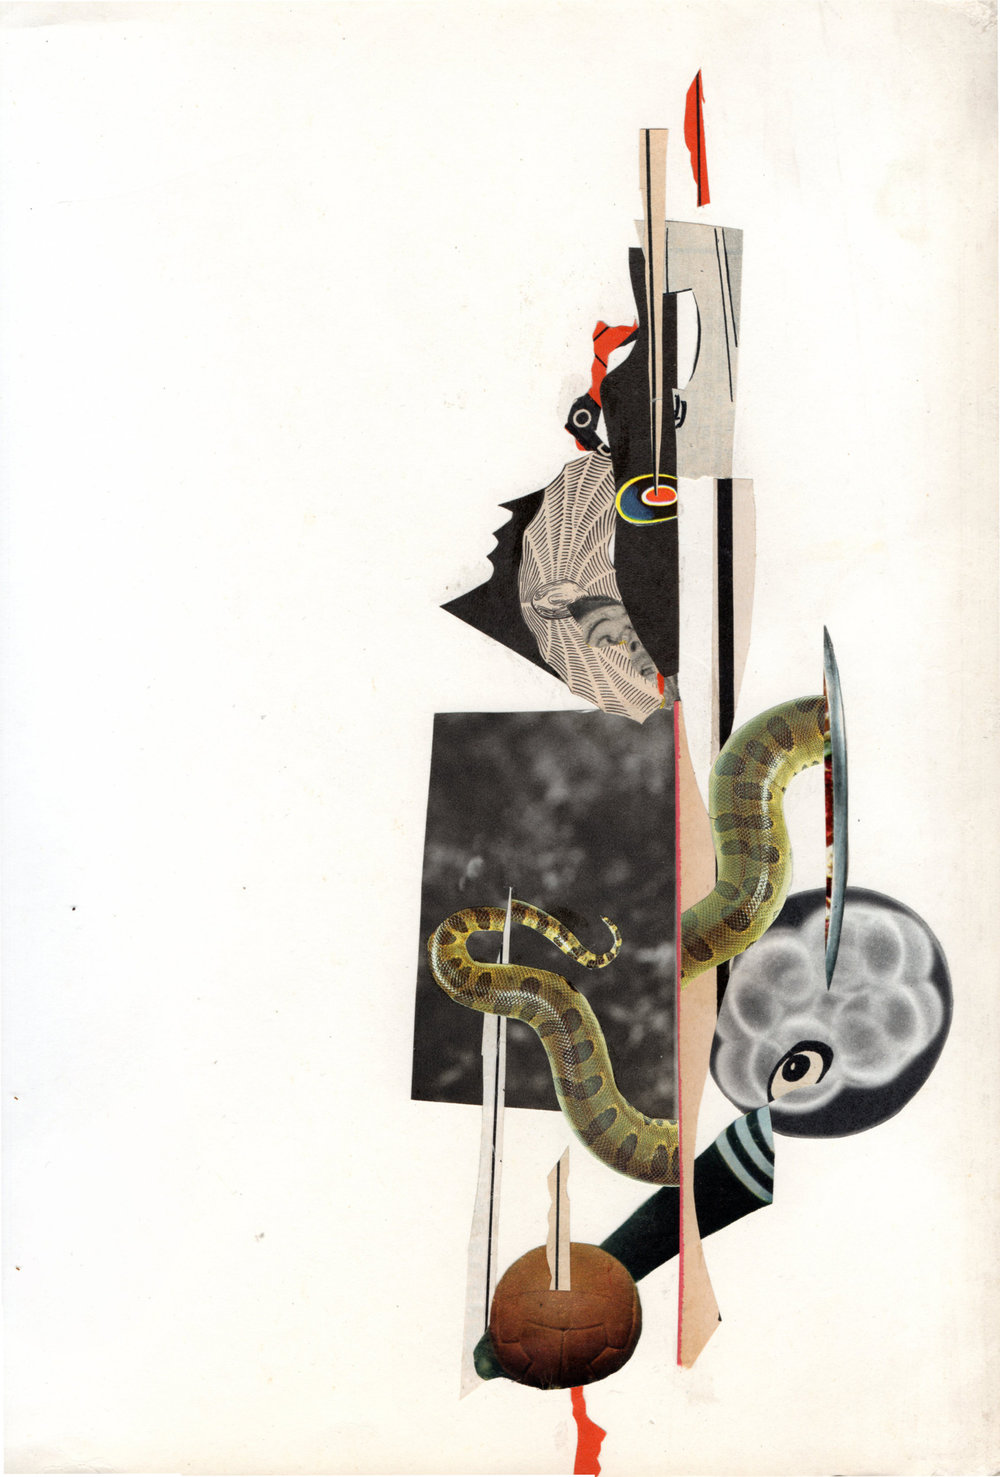 Collage Collaboration between Bill Noir & Jonathan Tegelaars, 2016, Ratatà Festival in Macerata, 31 x 24 cm